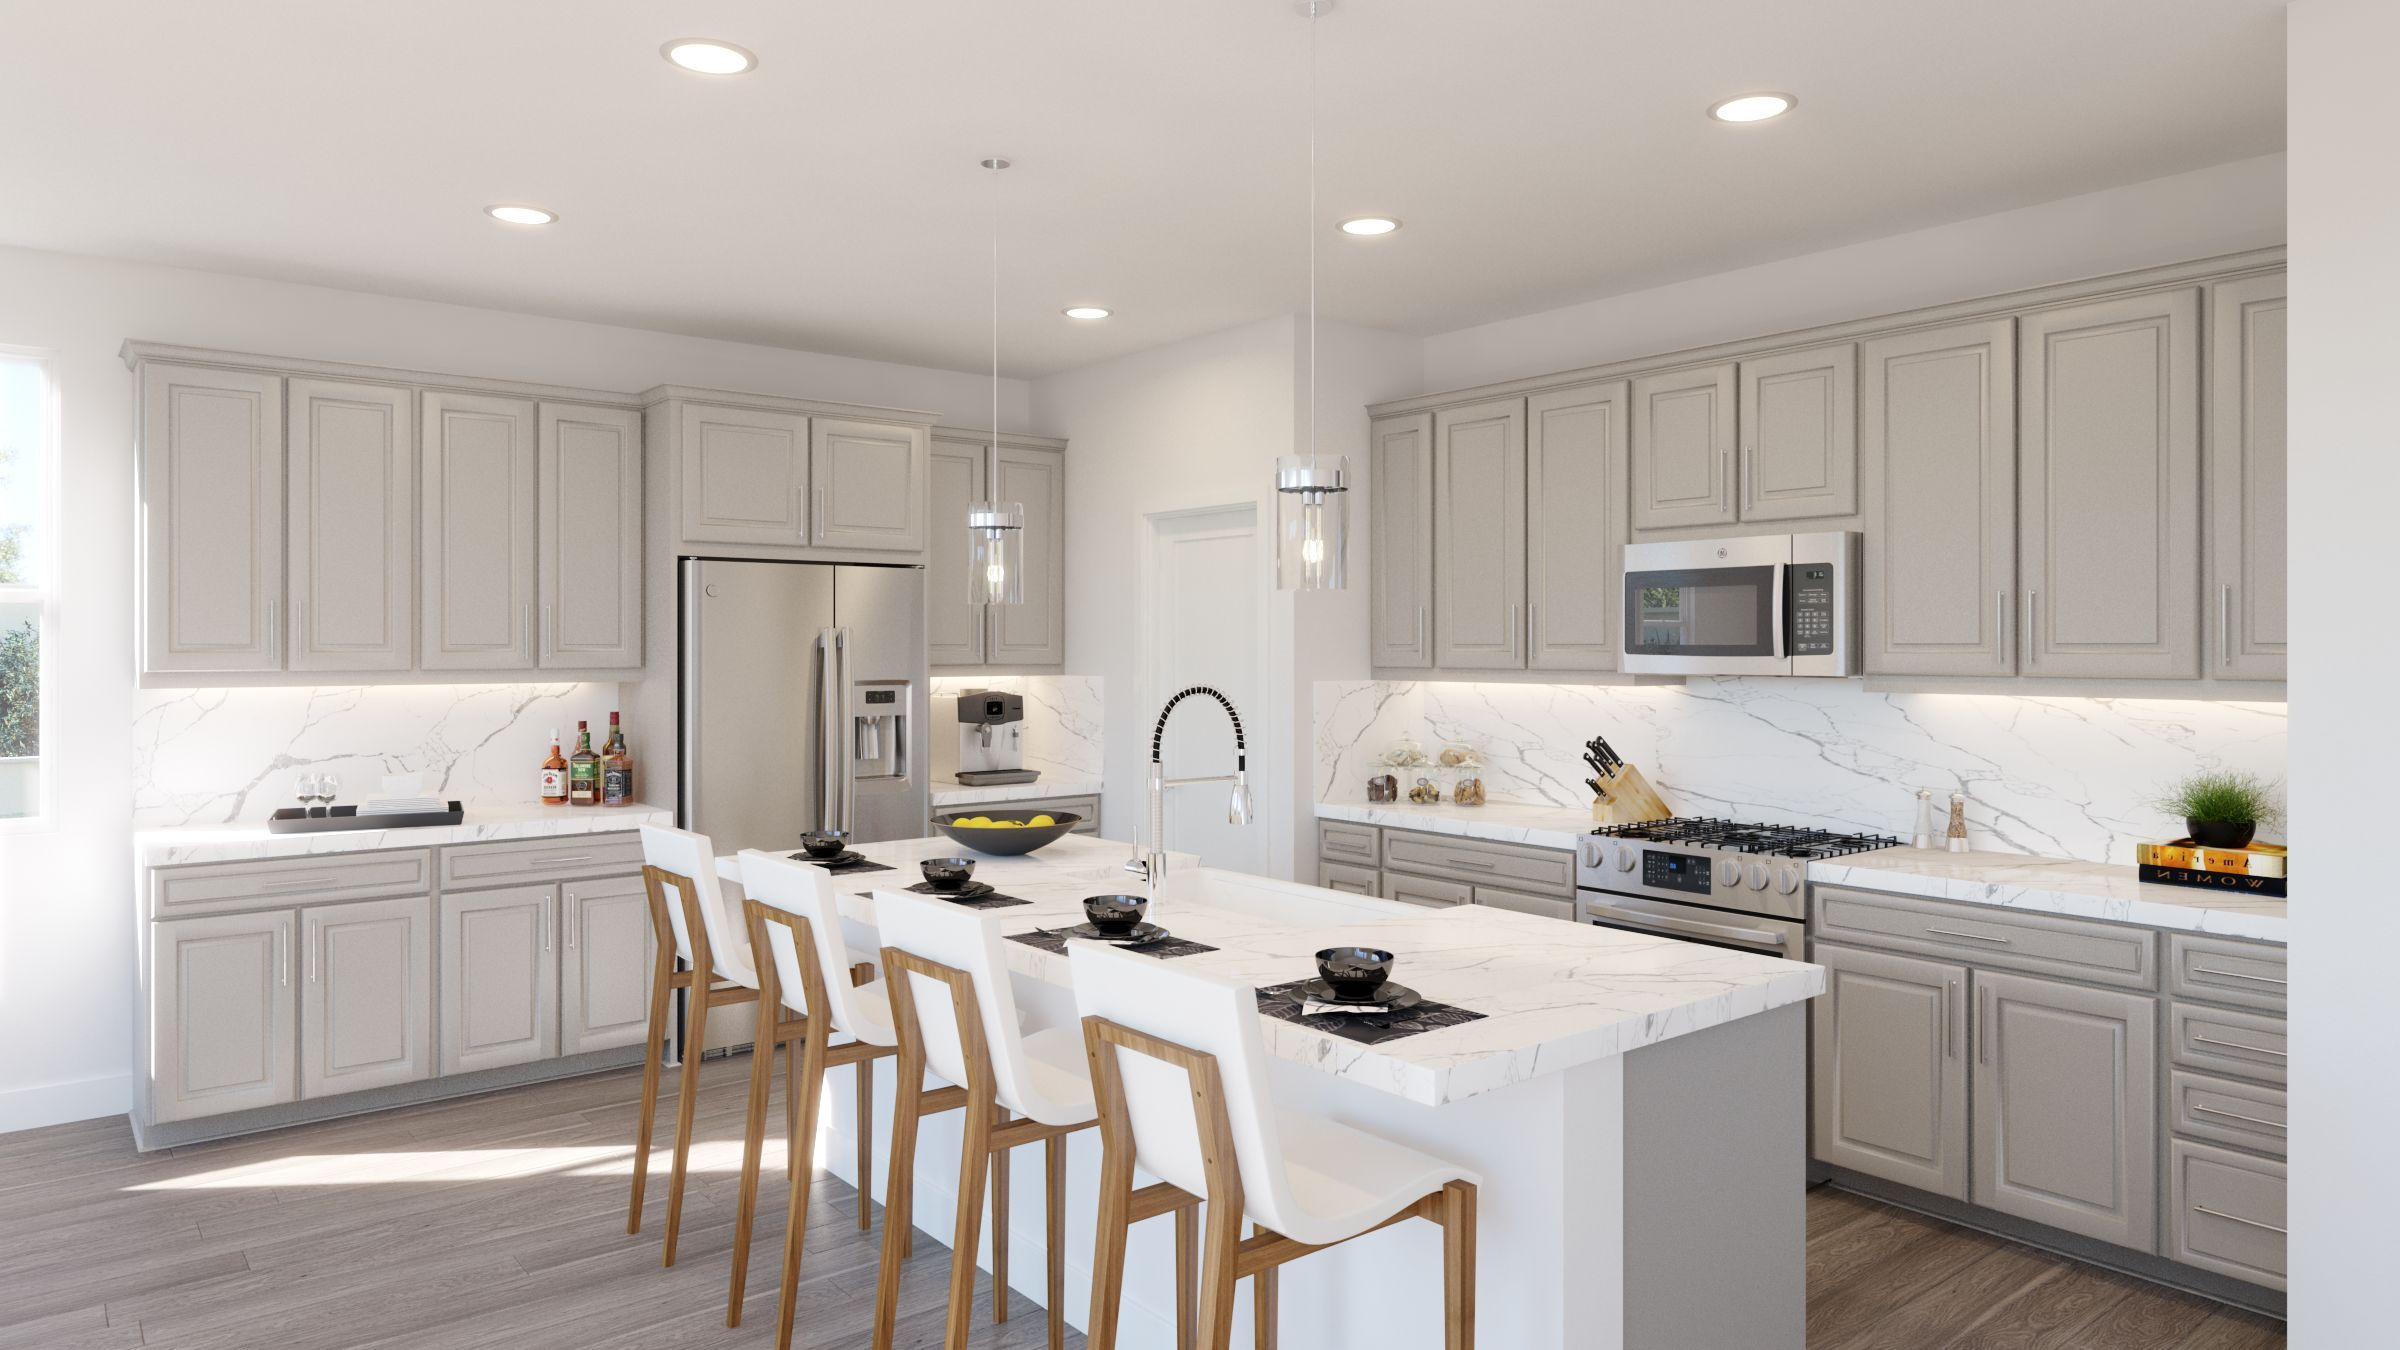 Kitchen featured in the Residence 1 Sungold Plan By Taylor Morrison in Stockton-Lodi, CA